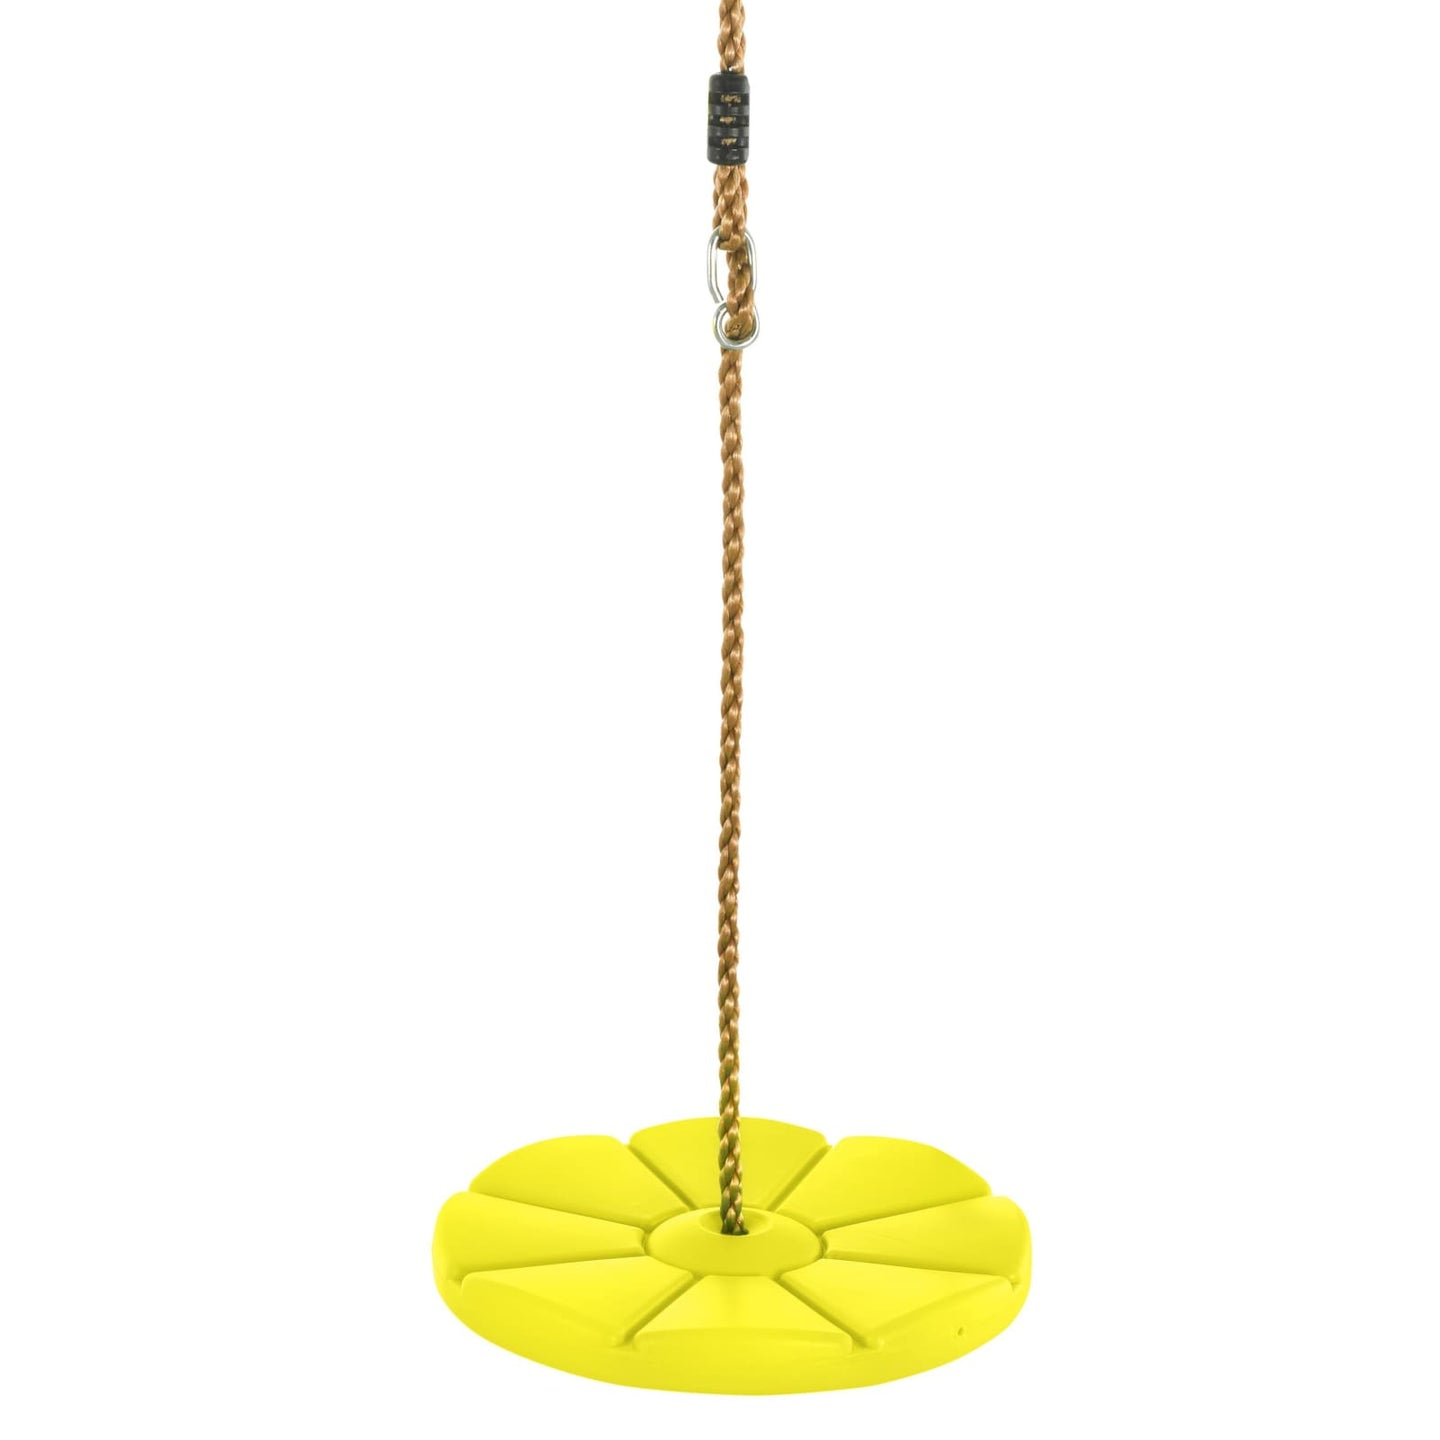 Swingan - Cool Disc Swing With Adjustable Rope - Yellow - SWDSR-YL - Swings & Accessories